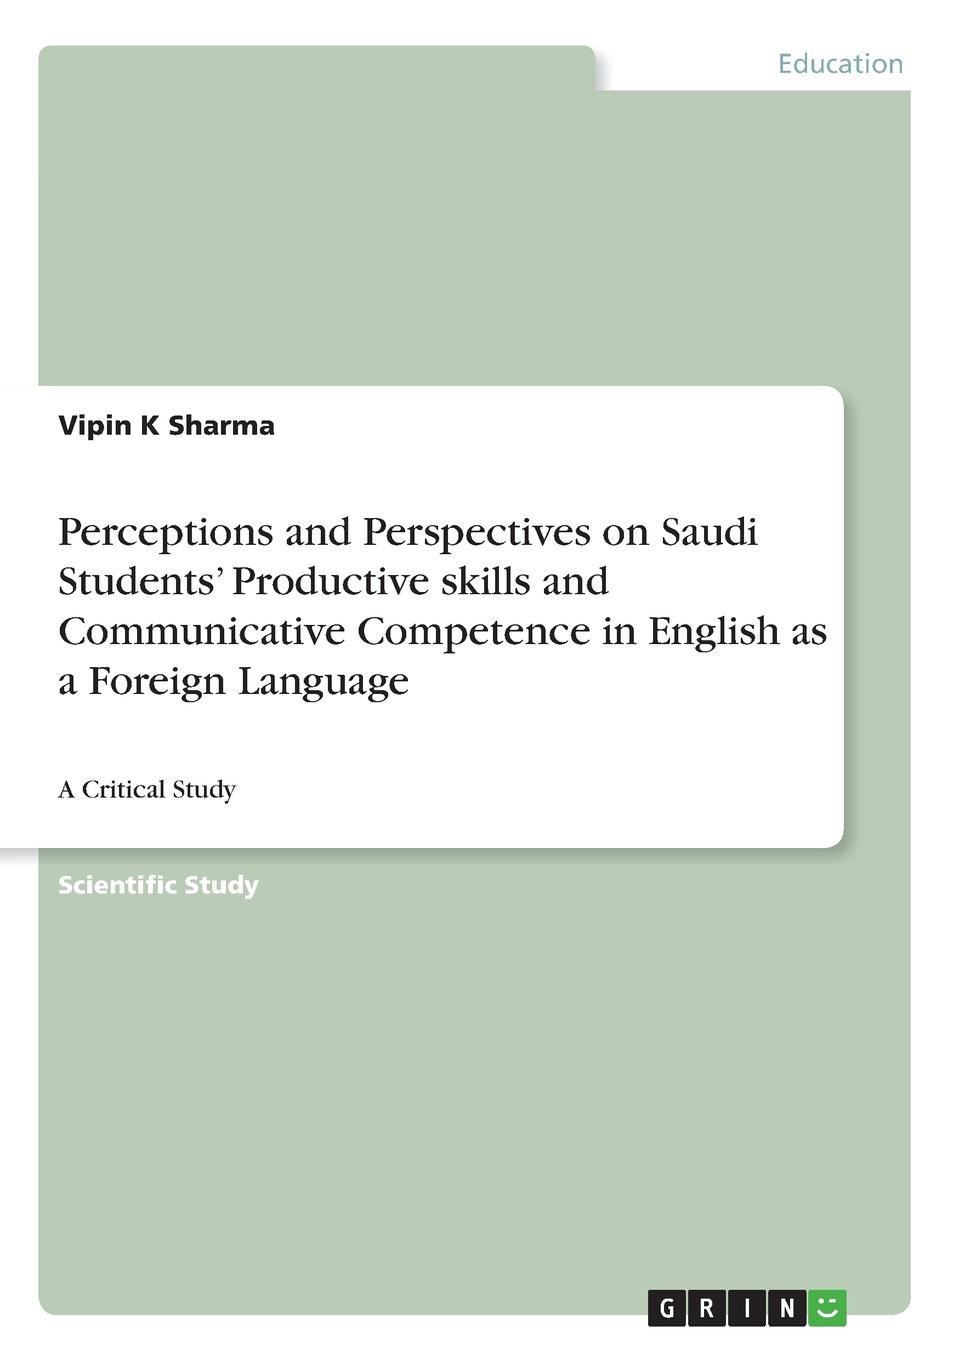 Vipin K Sharma Perceptions and Perspectives on Saudi Students. Productive skills and Communicative Competence in English as a Foreign Language adil ishag motivation and attitudes of sudanese students towards learning english and german